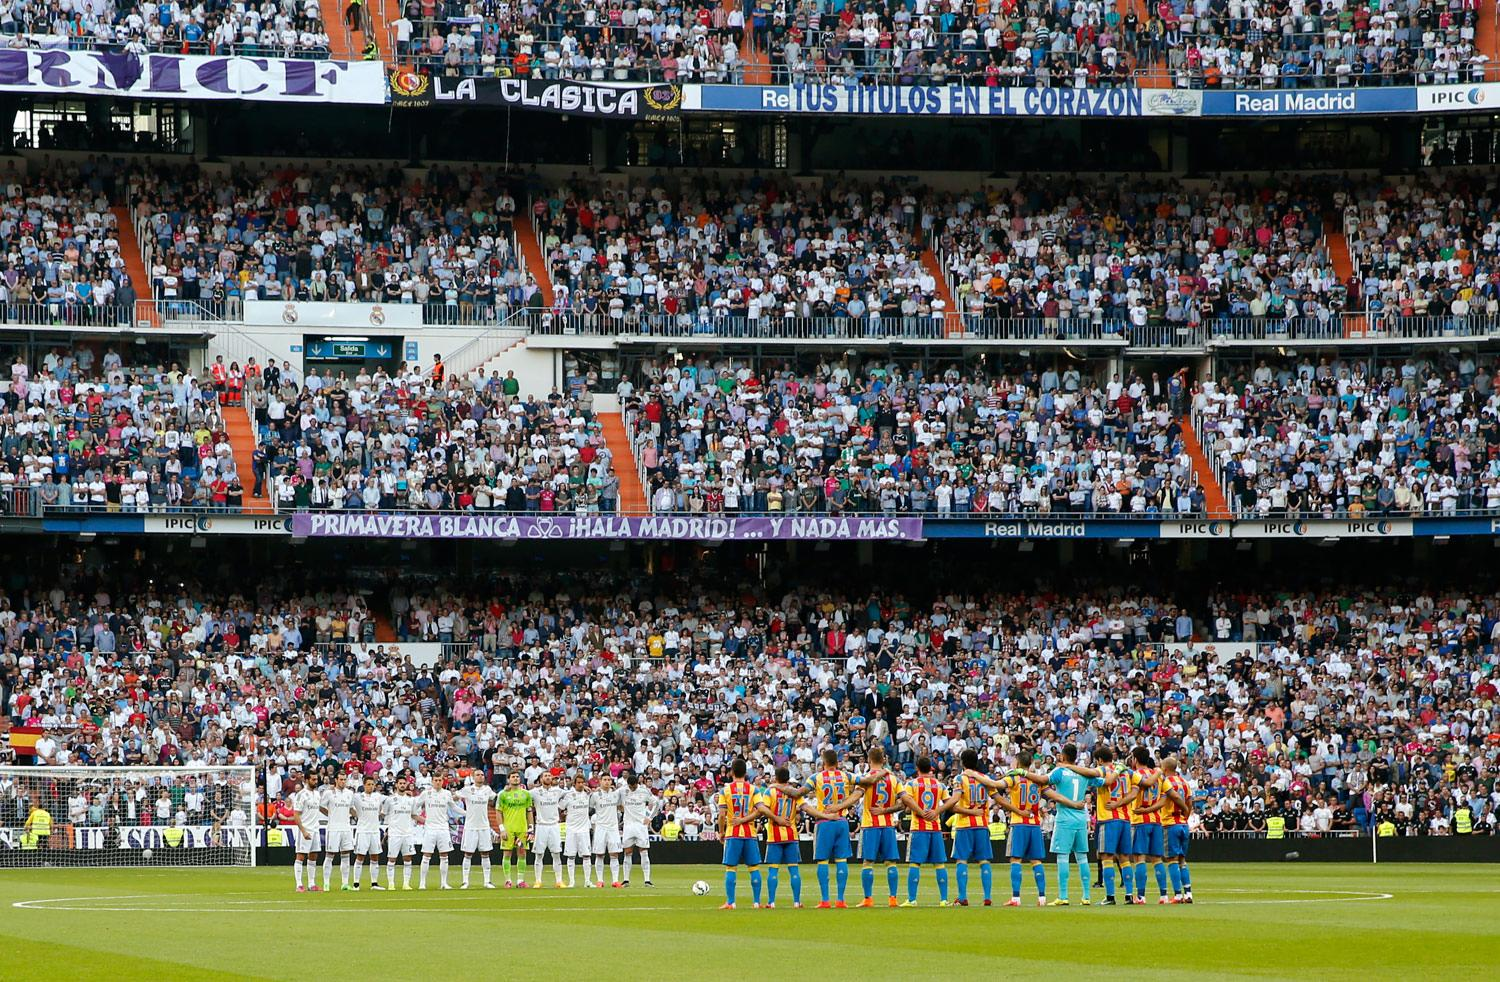 Real Madrid - Real Madrid - Valencia - 09-05-2015